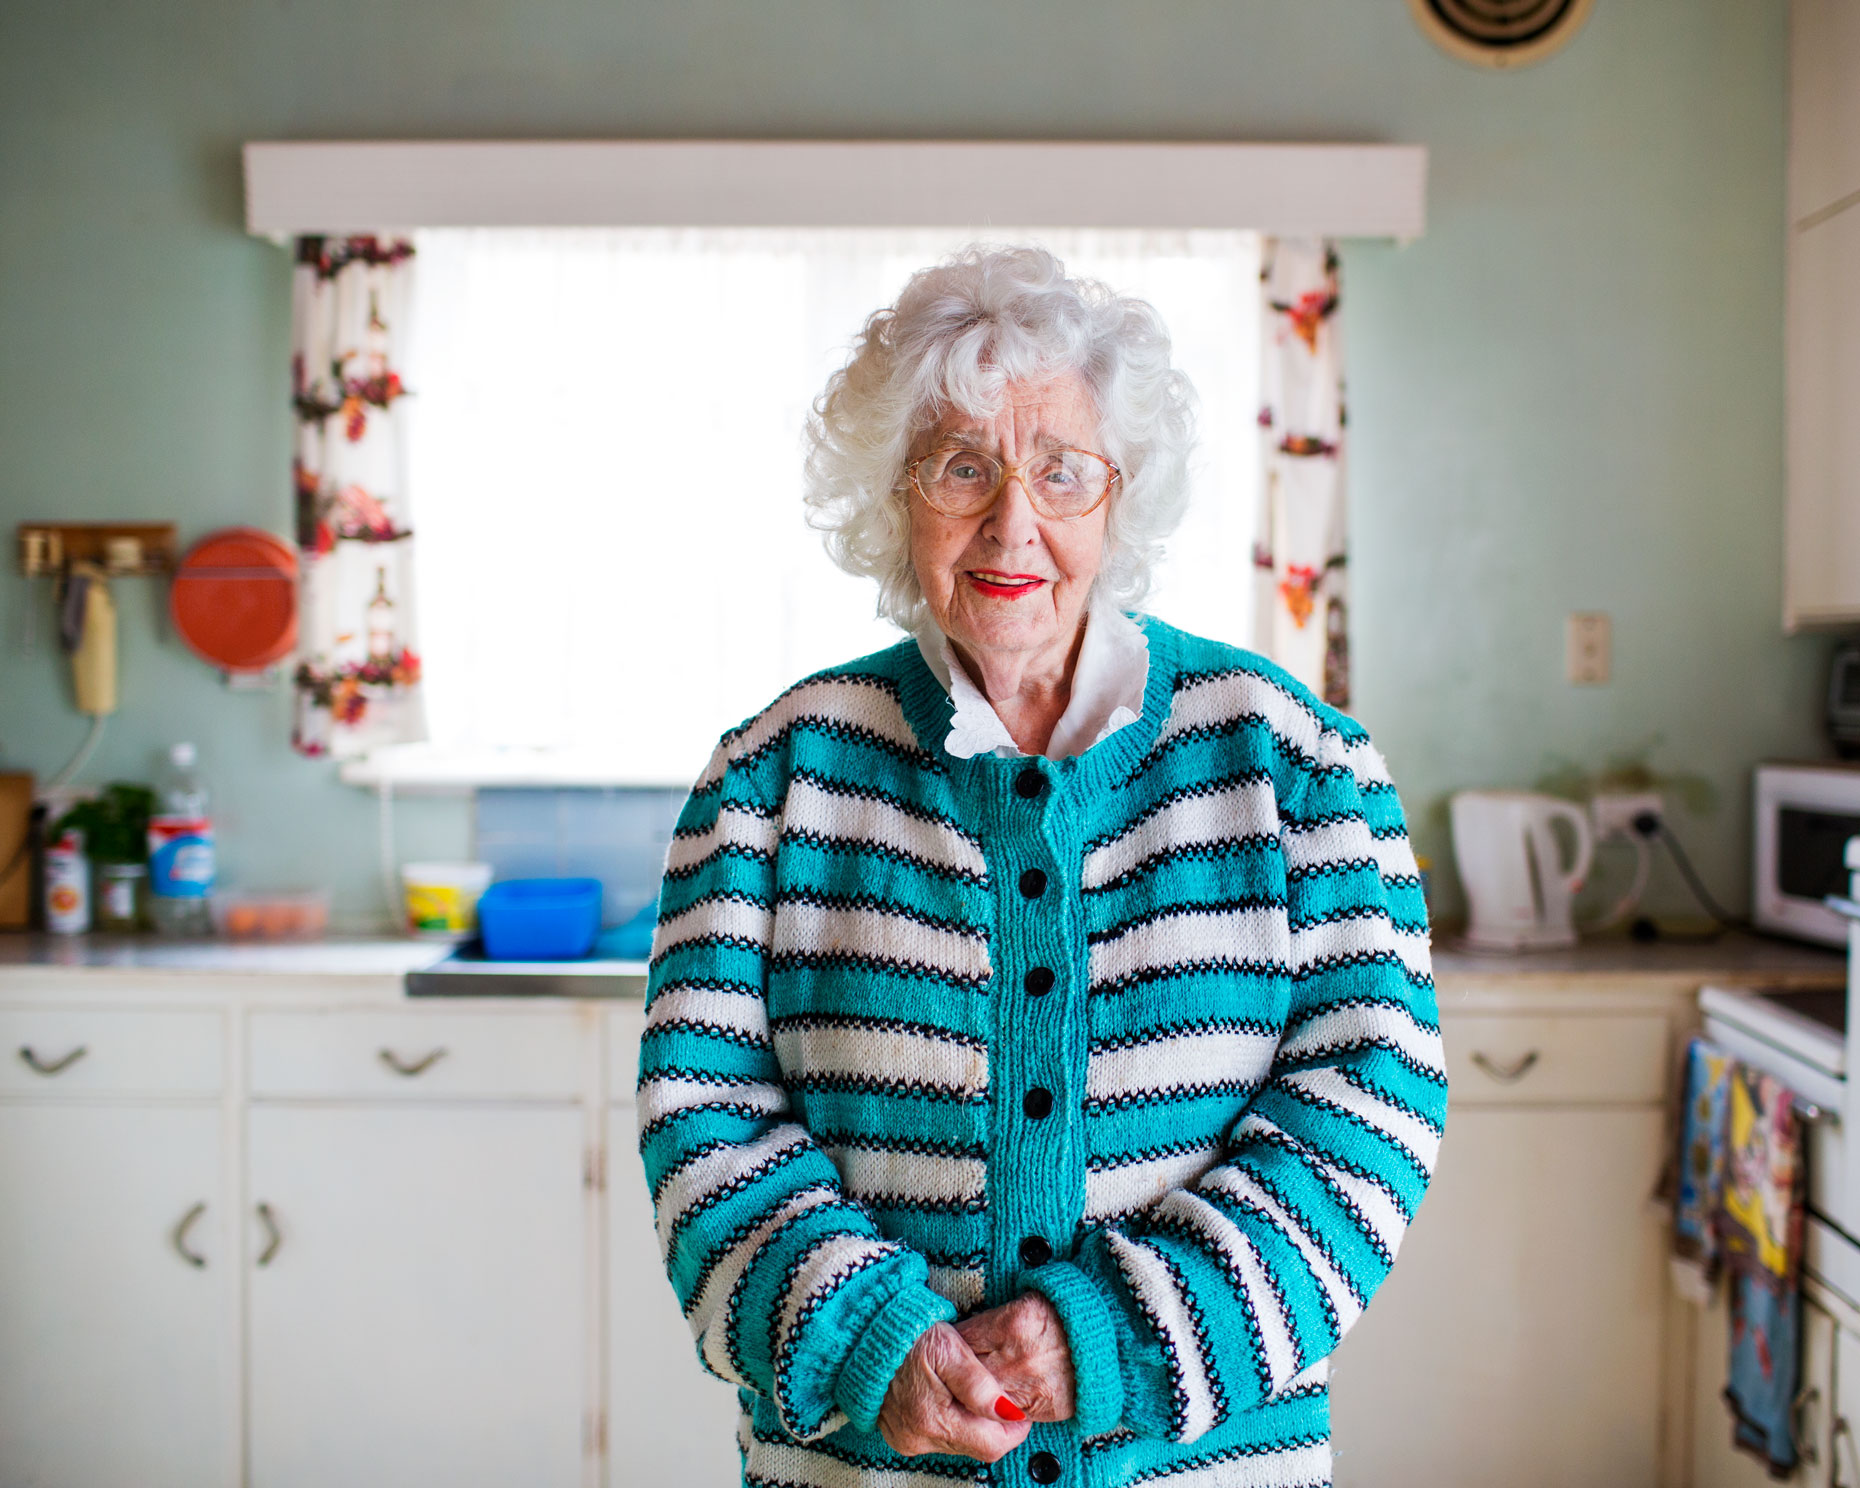 Old lady in colorful cardigan in kitchen